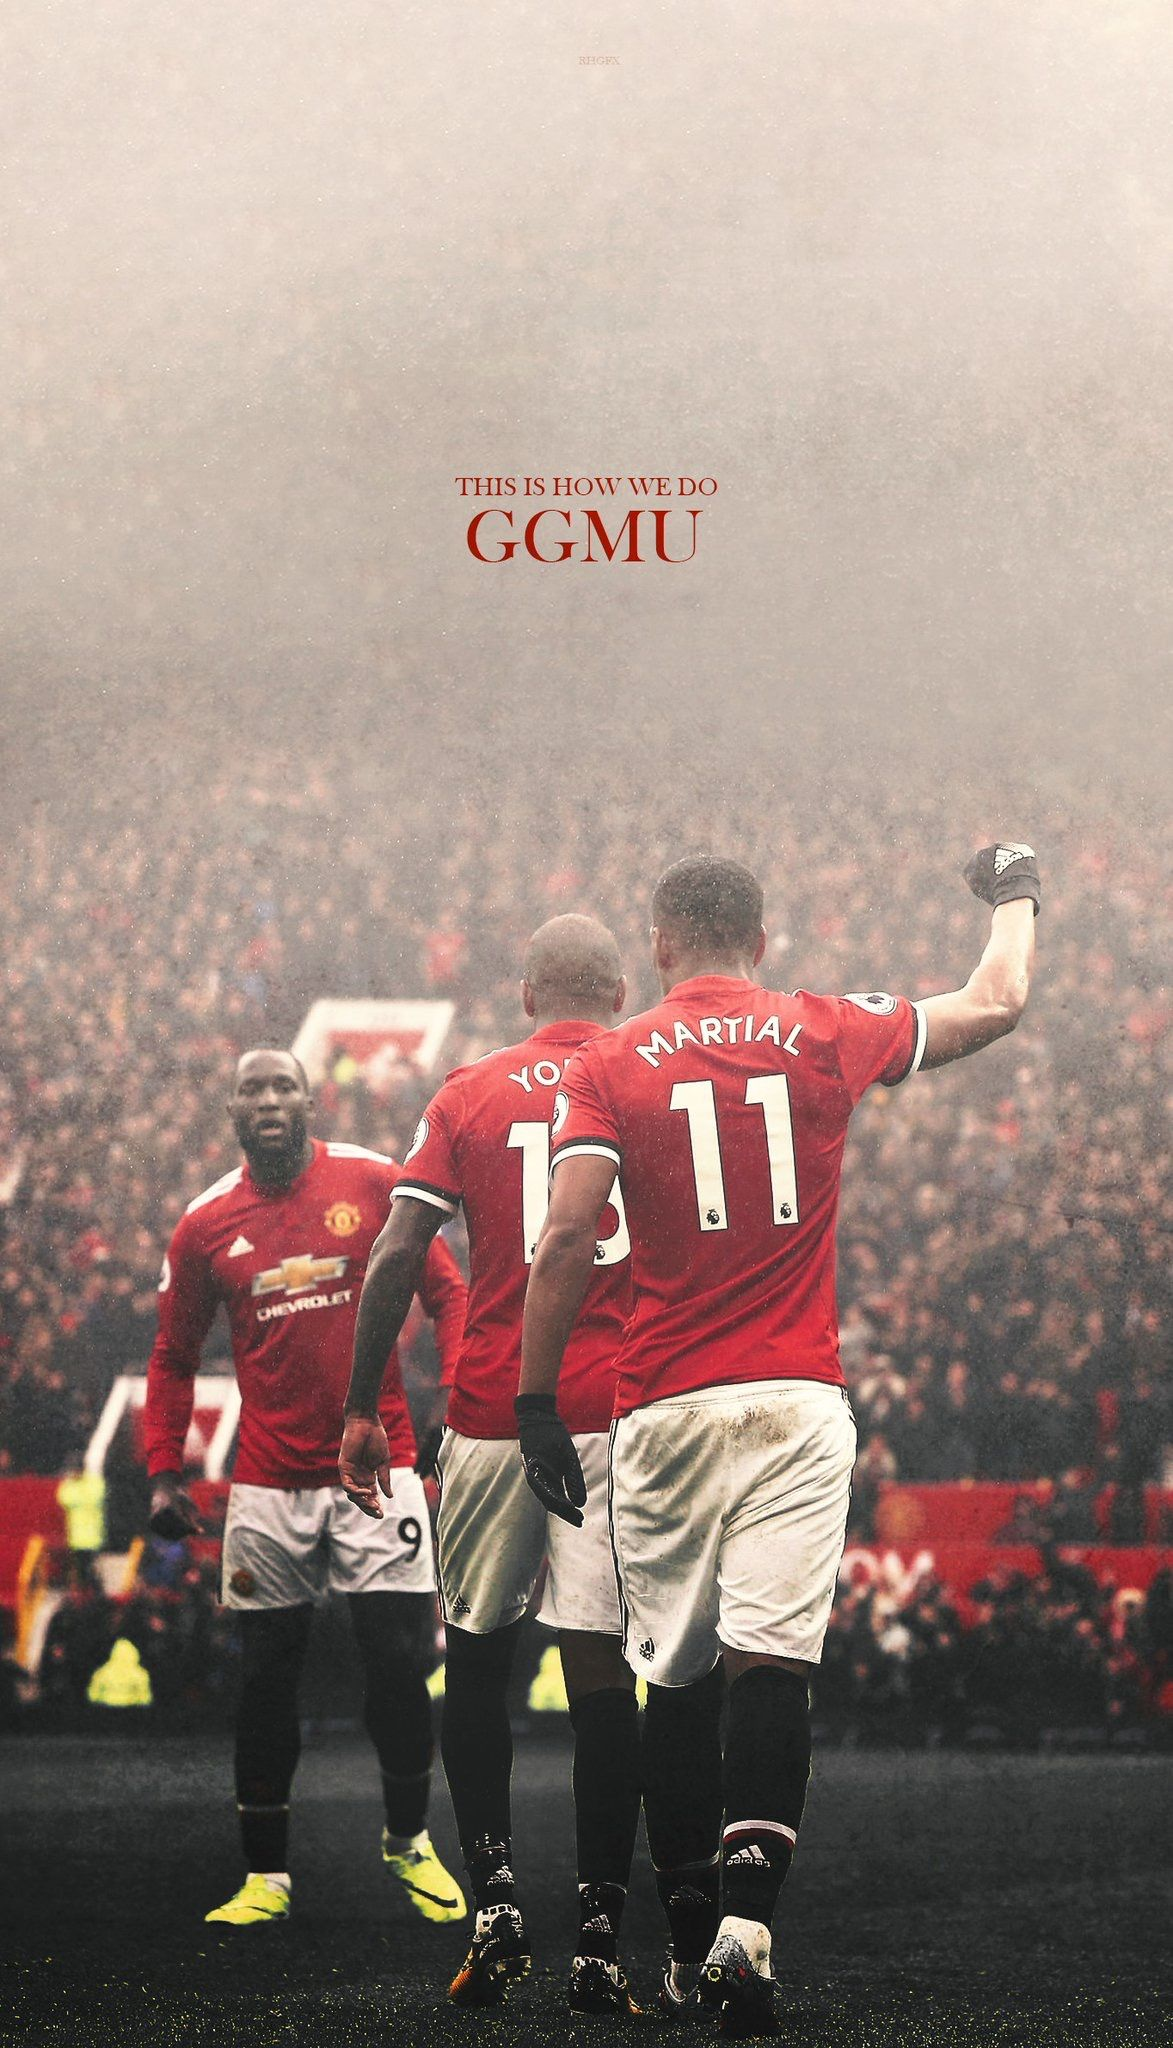 Mufc Iphone Wallpaper Manchester United Manchester United Football Club 맨체스터